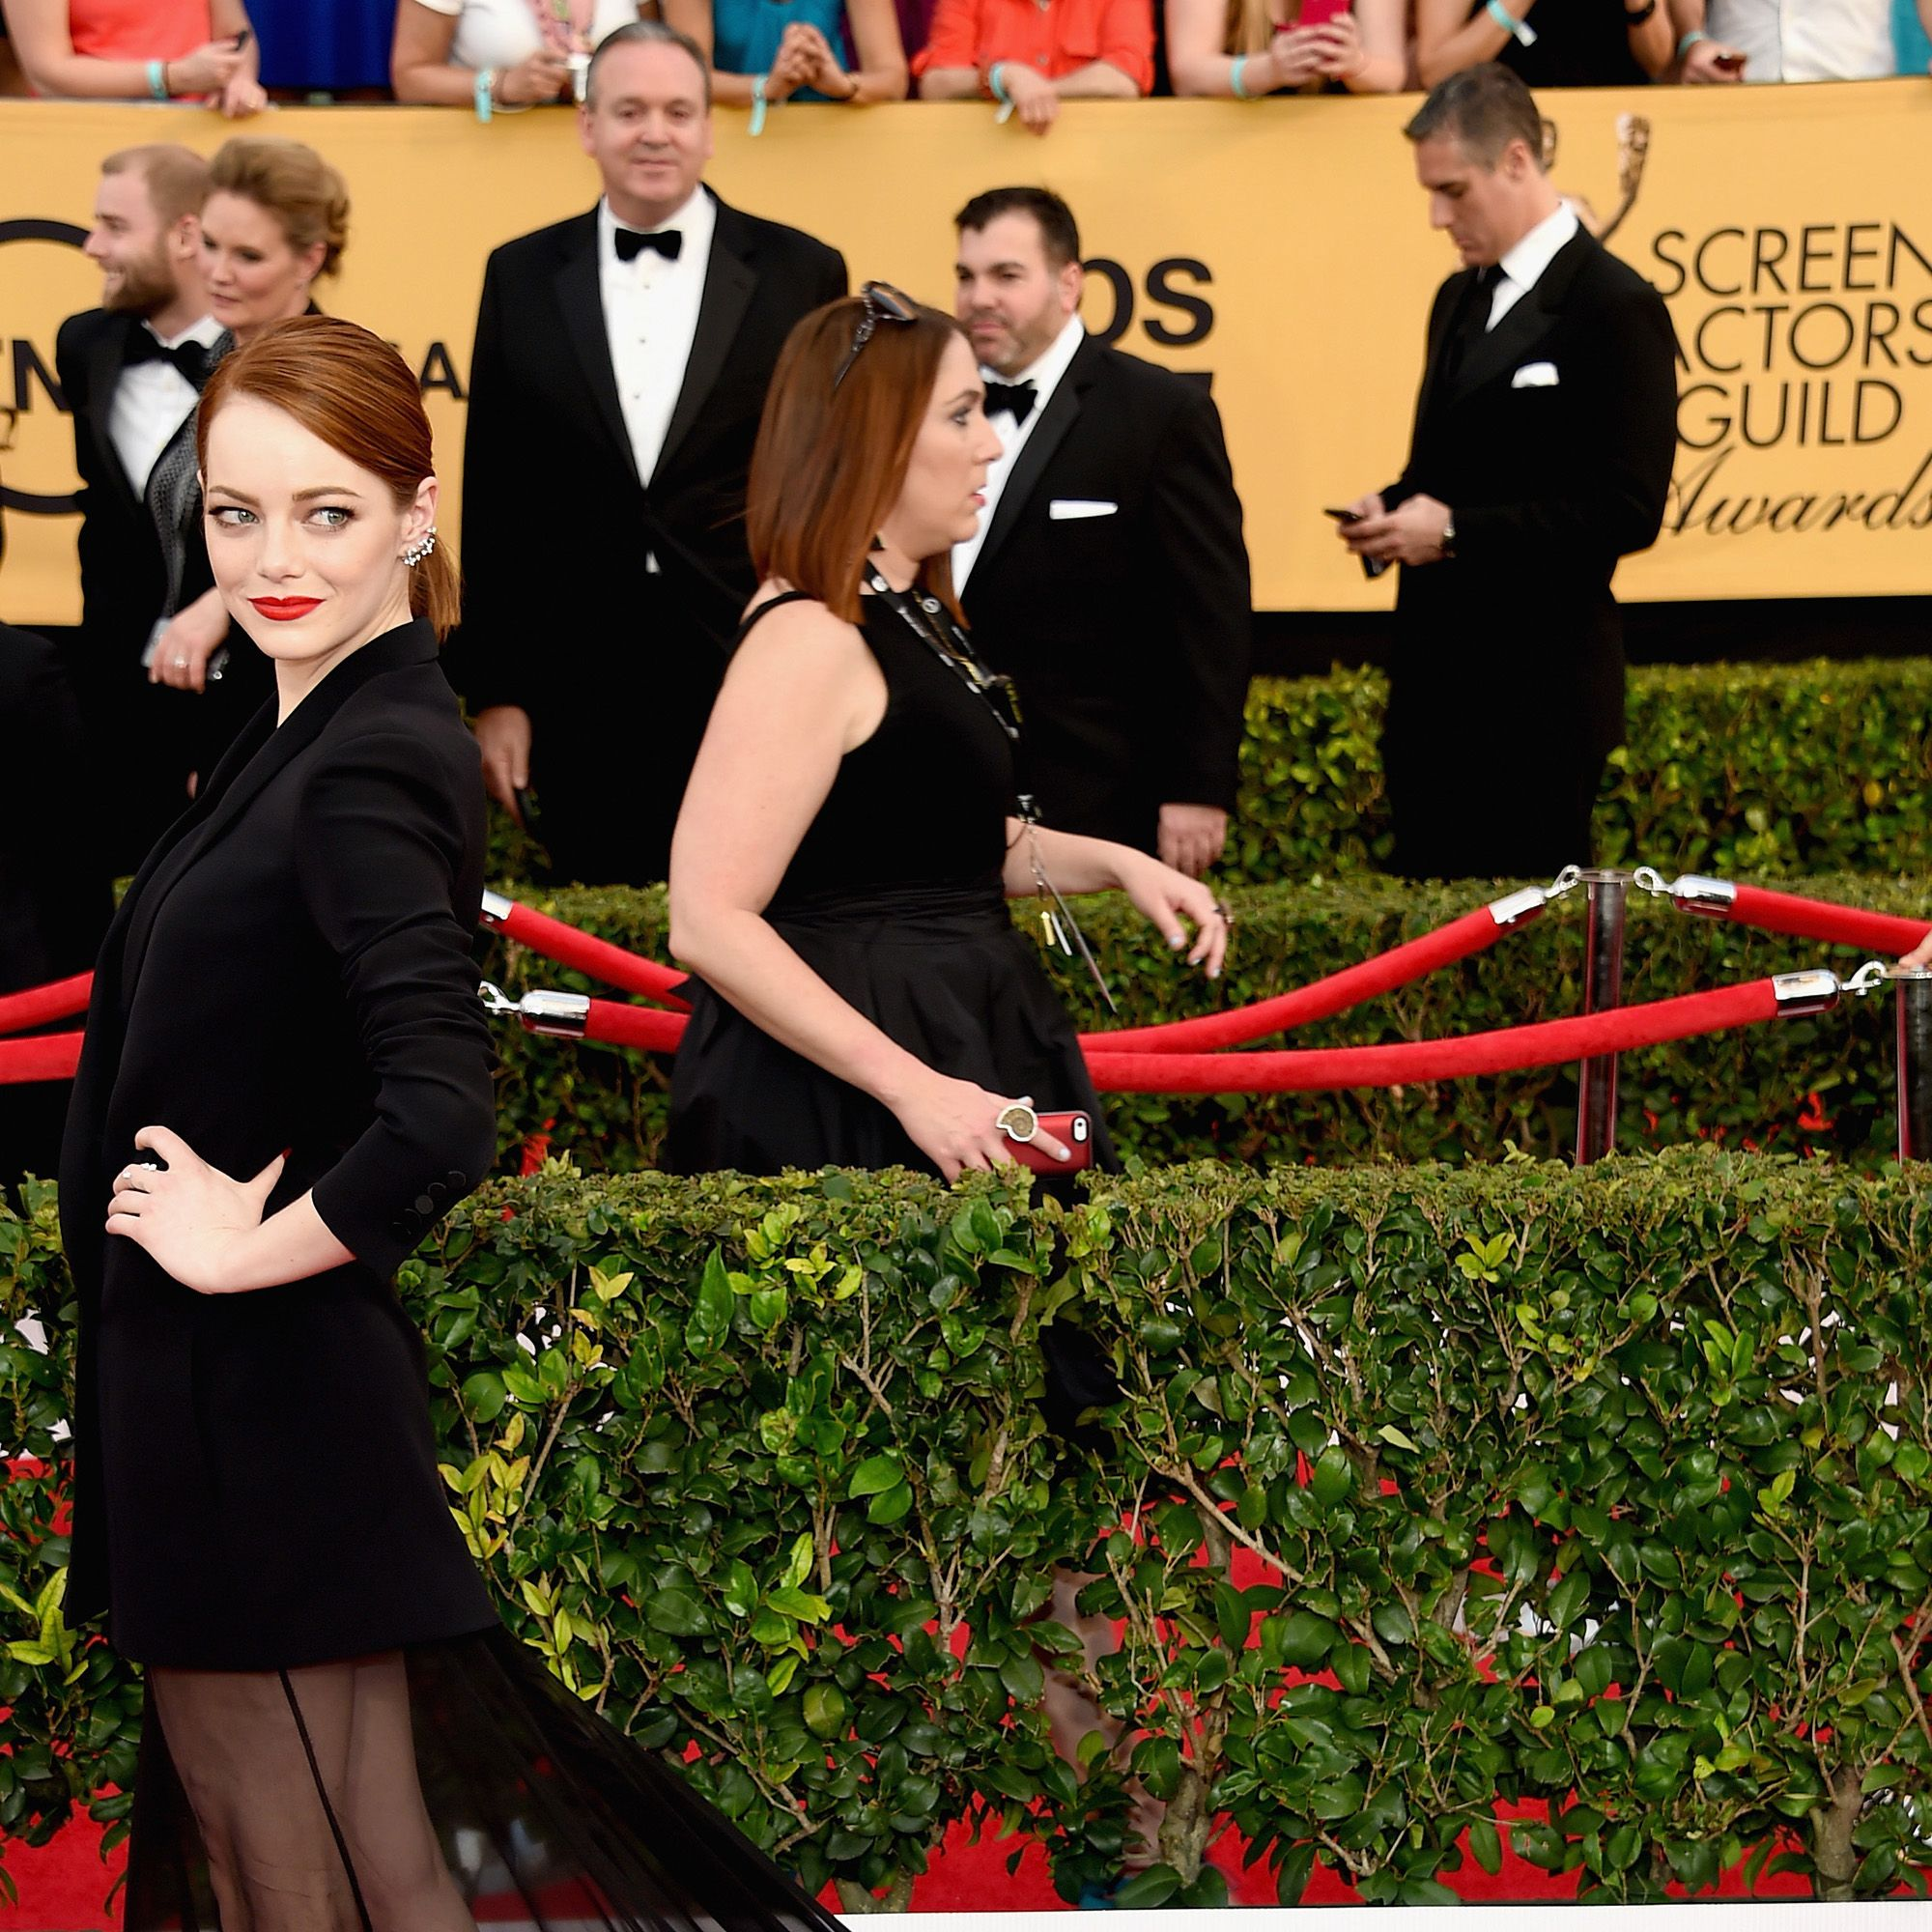 LOS ANGELES, CA - JANUARY 25:  Actress Emma Stone attends the 21st Annual Screen Actors Guild Awards at The Shrine Auditorium on January 25, 2015 in Los Angeles, California.  (Photo by Ethan Miller/Getty Images)